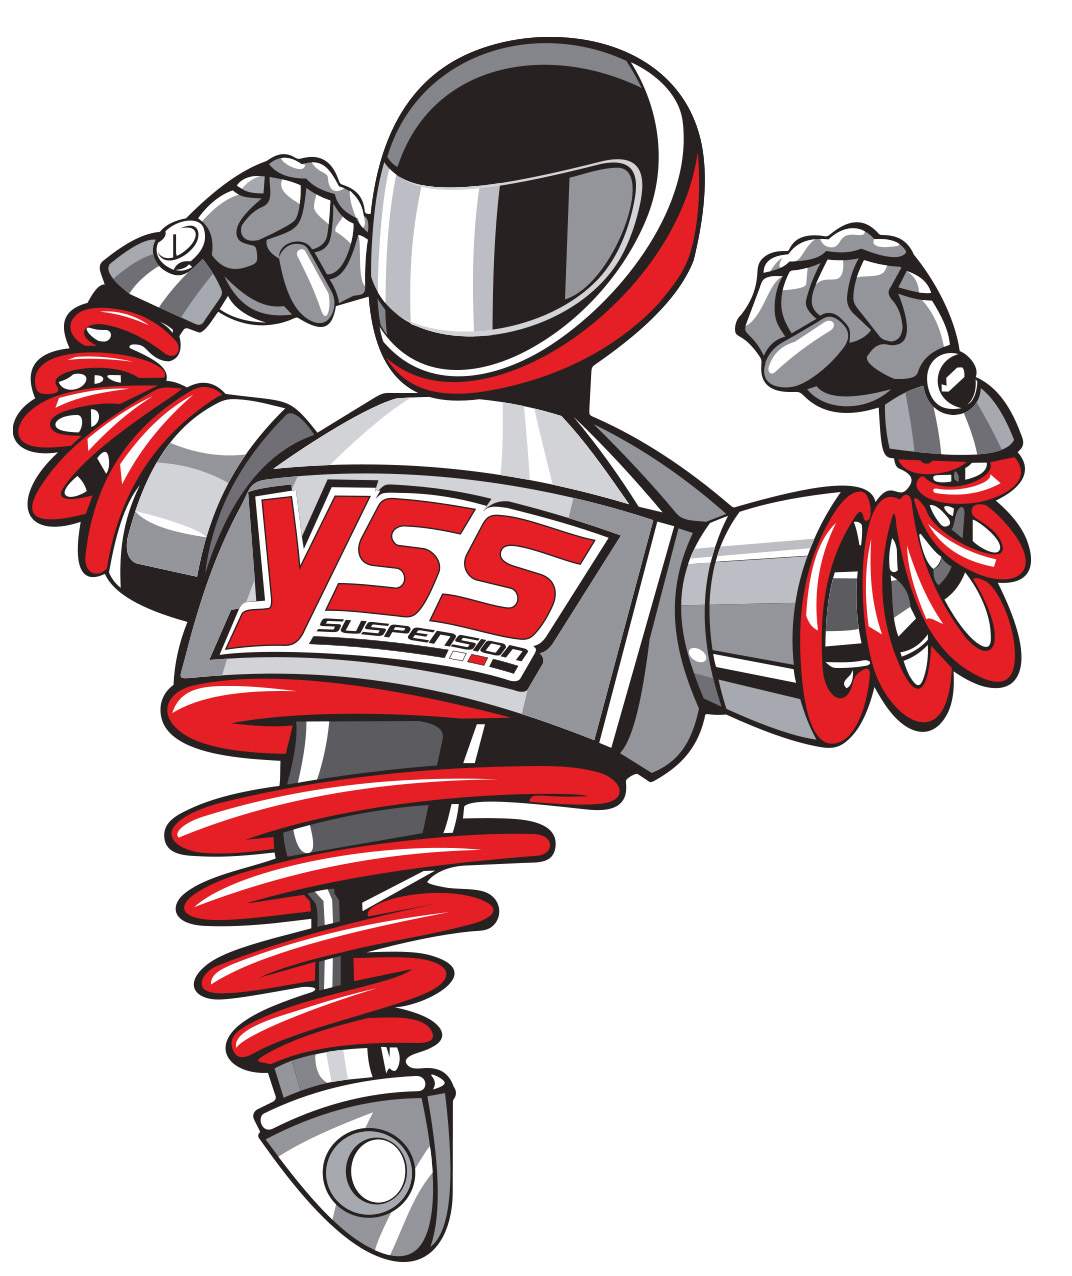 Yss Fitments For Honda Motorcycles